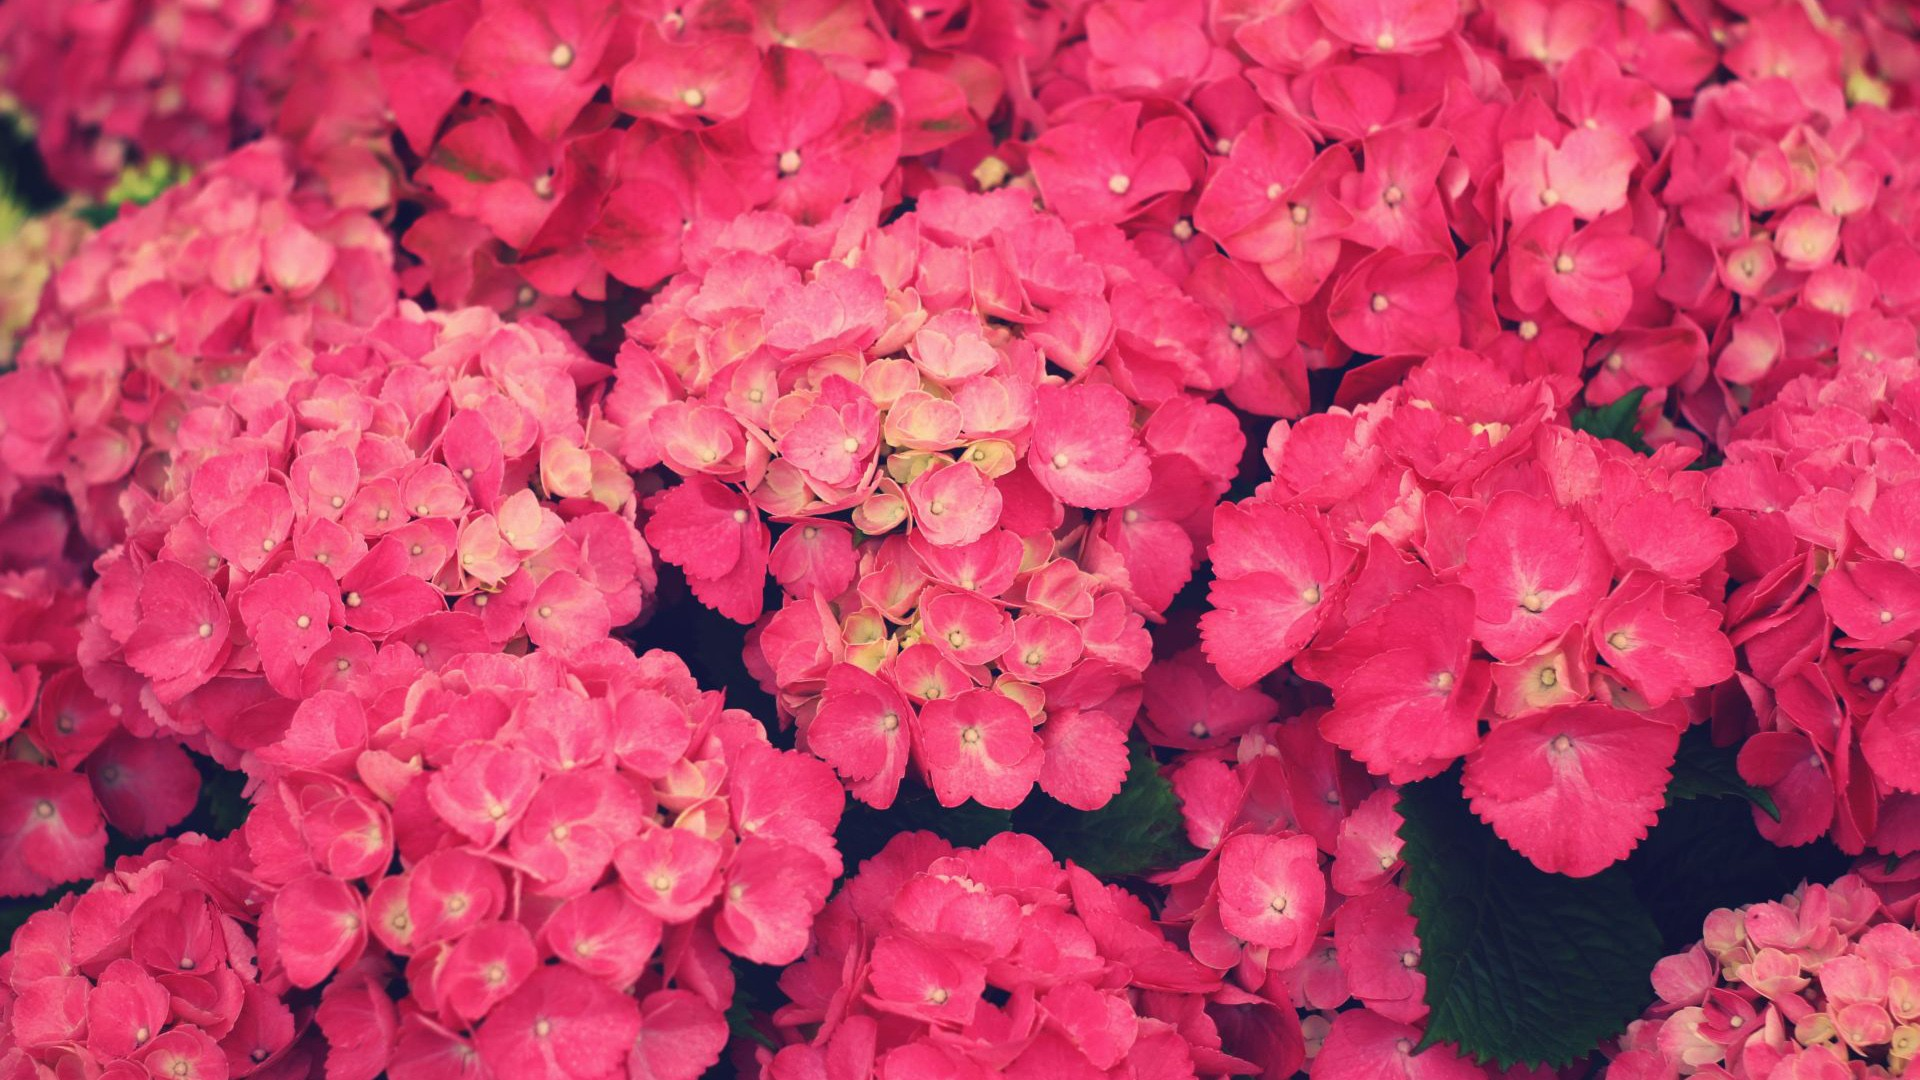 pink flowers 6 pink flowers sib 7 pink flowers wallpapers